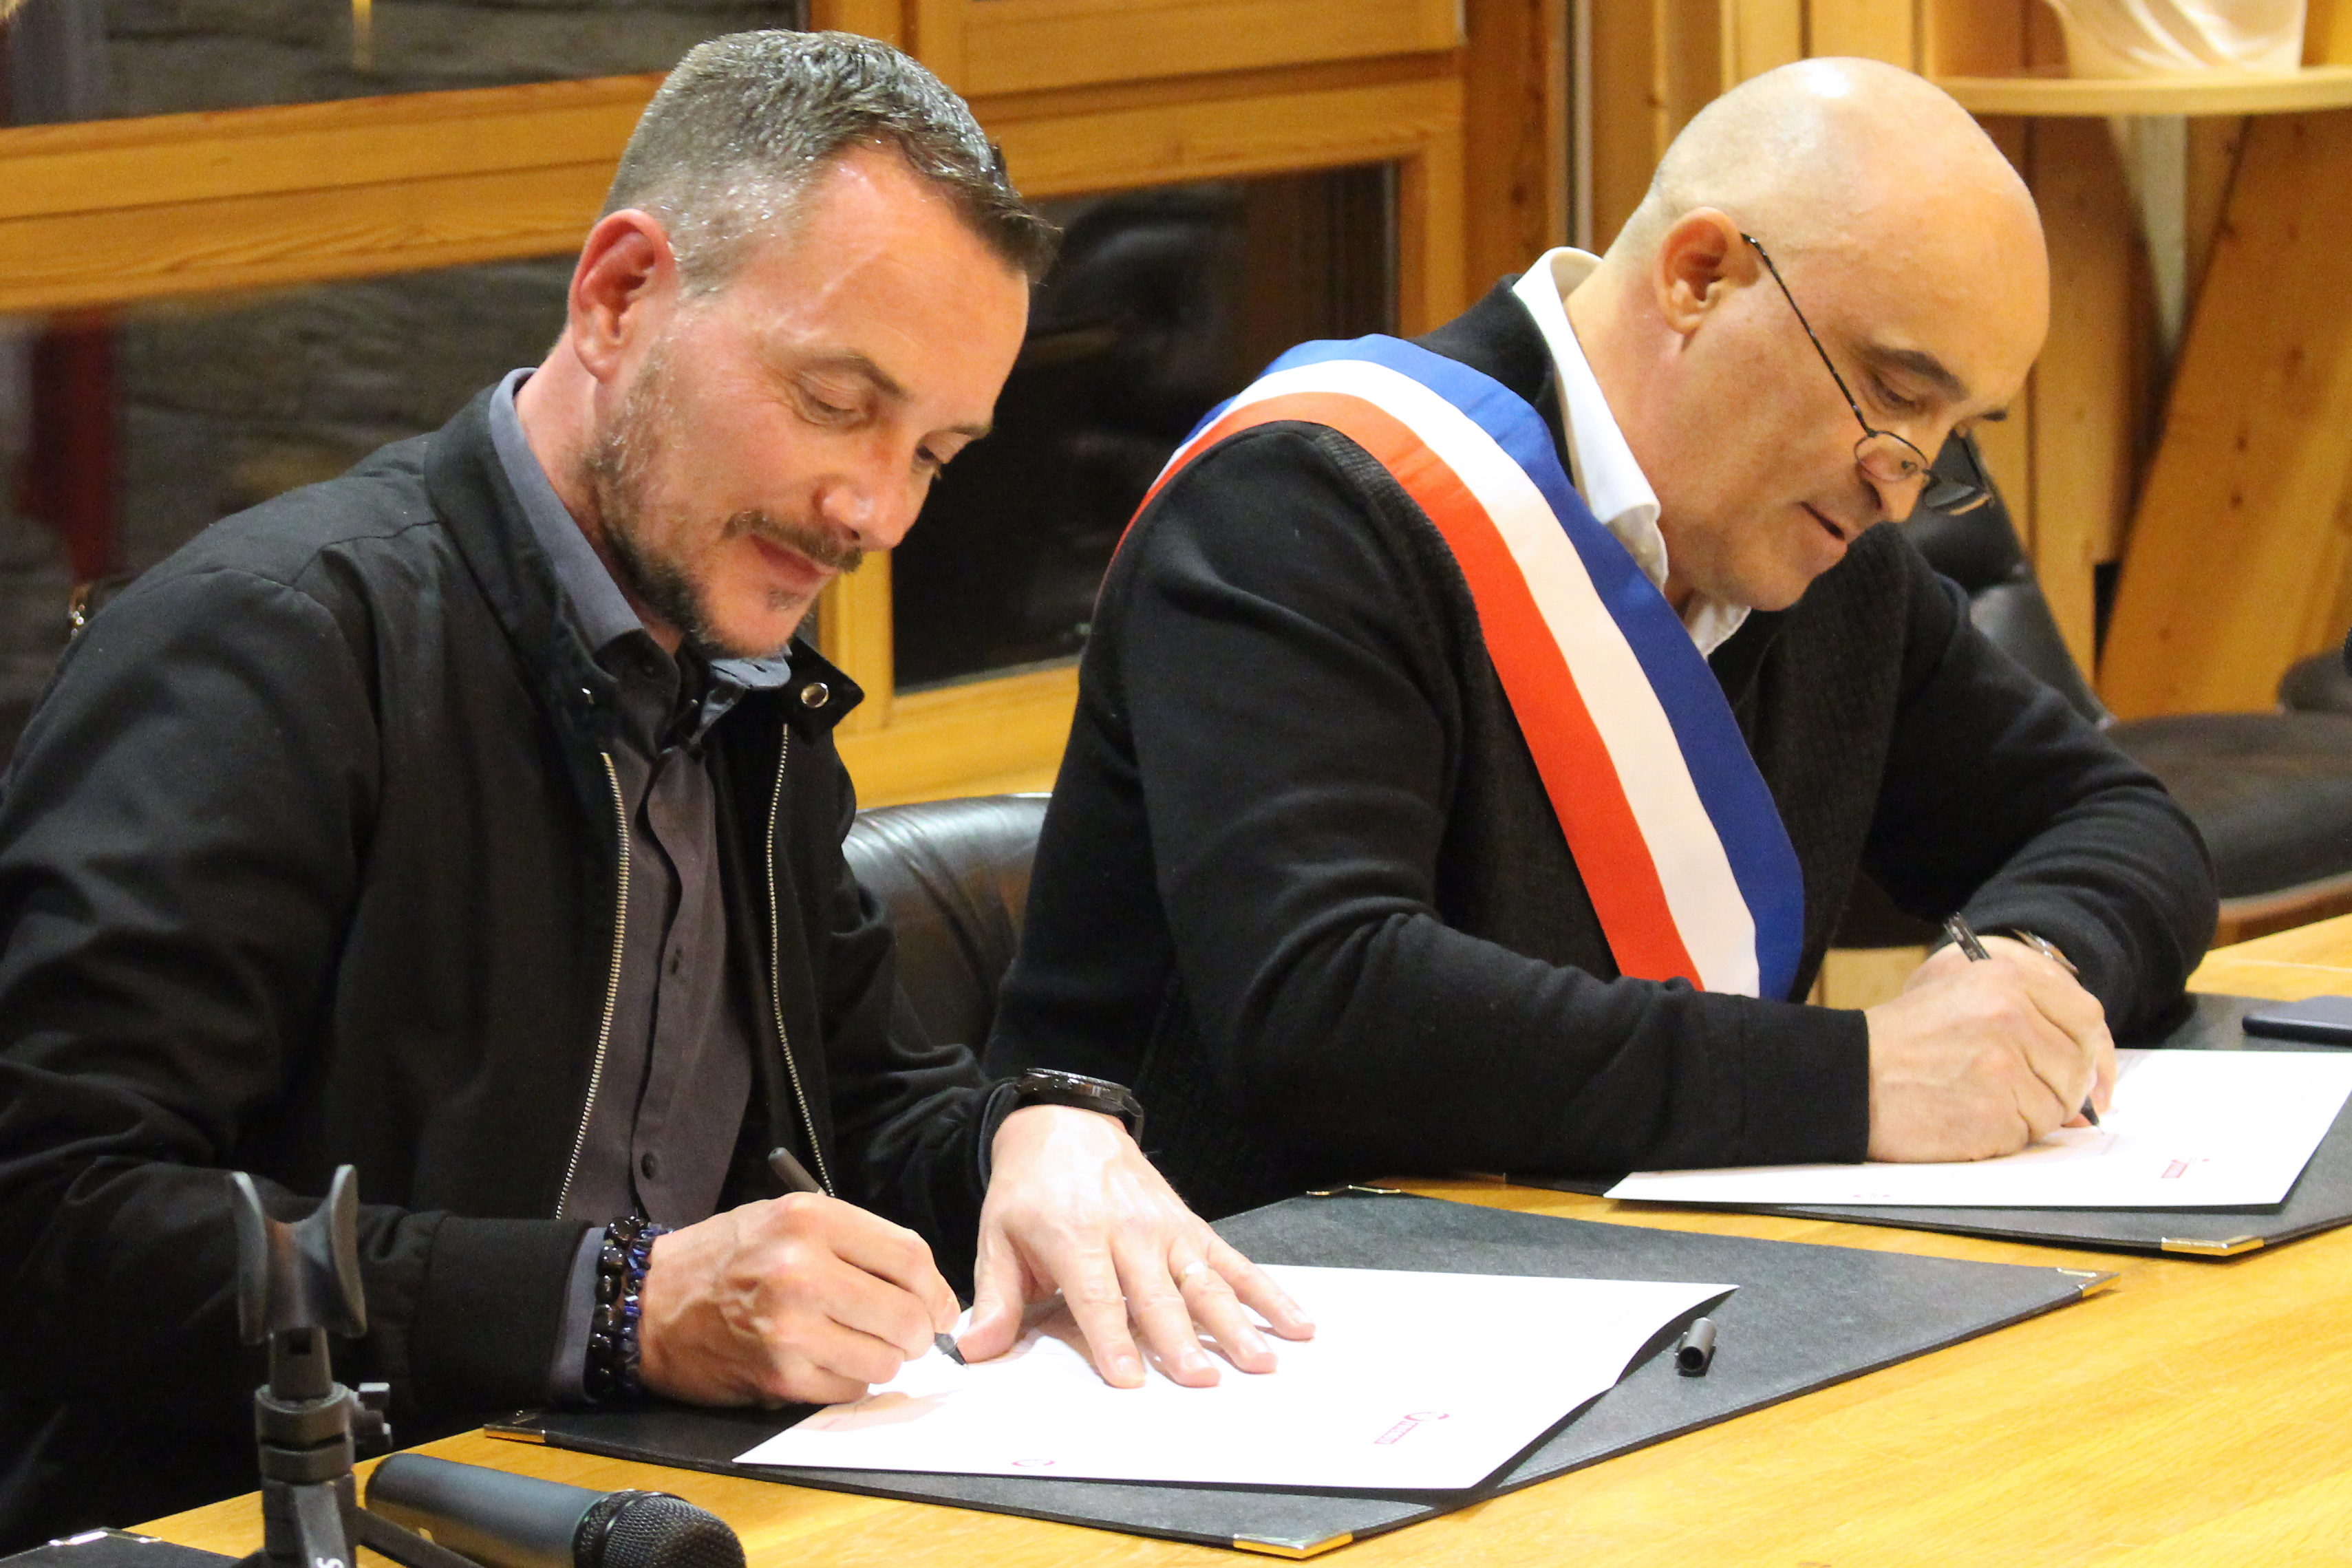 VINCENT BOILEAU AUTIN JC VITALE FRIENDLY @ MAIRIE-TIGNES.FR